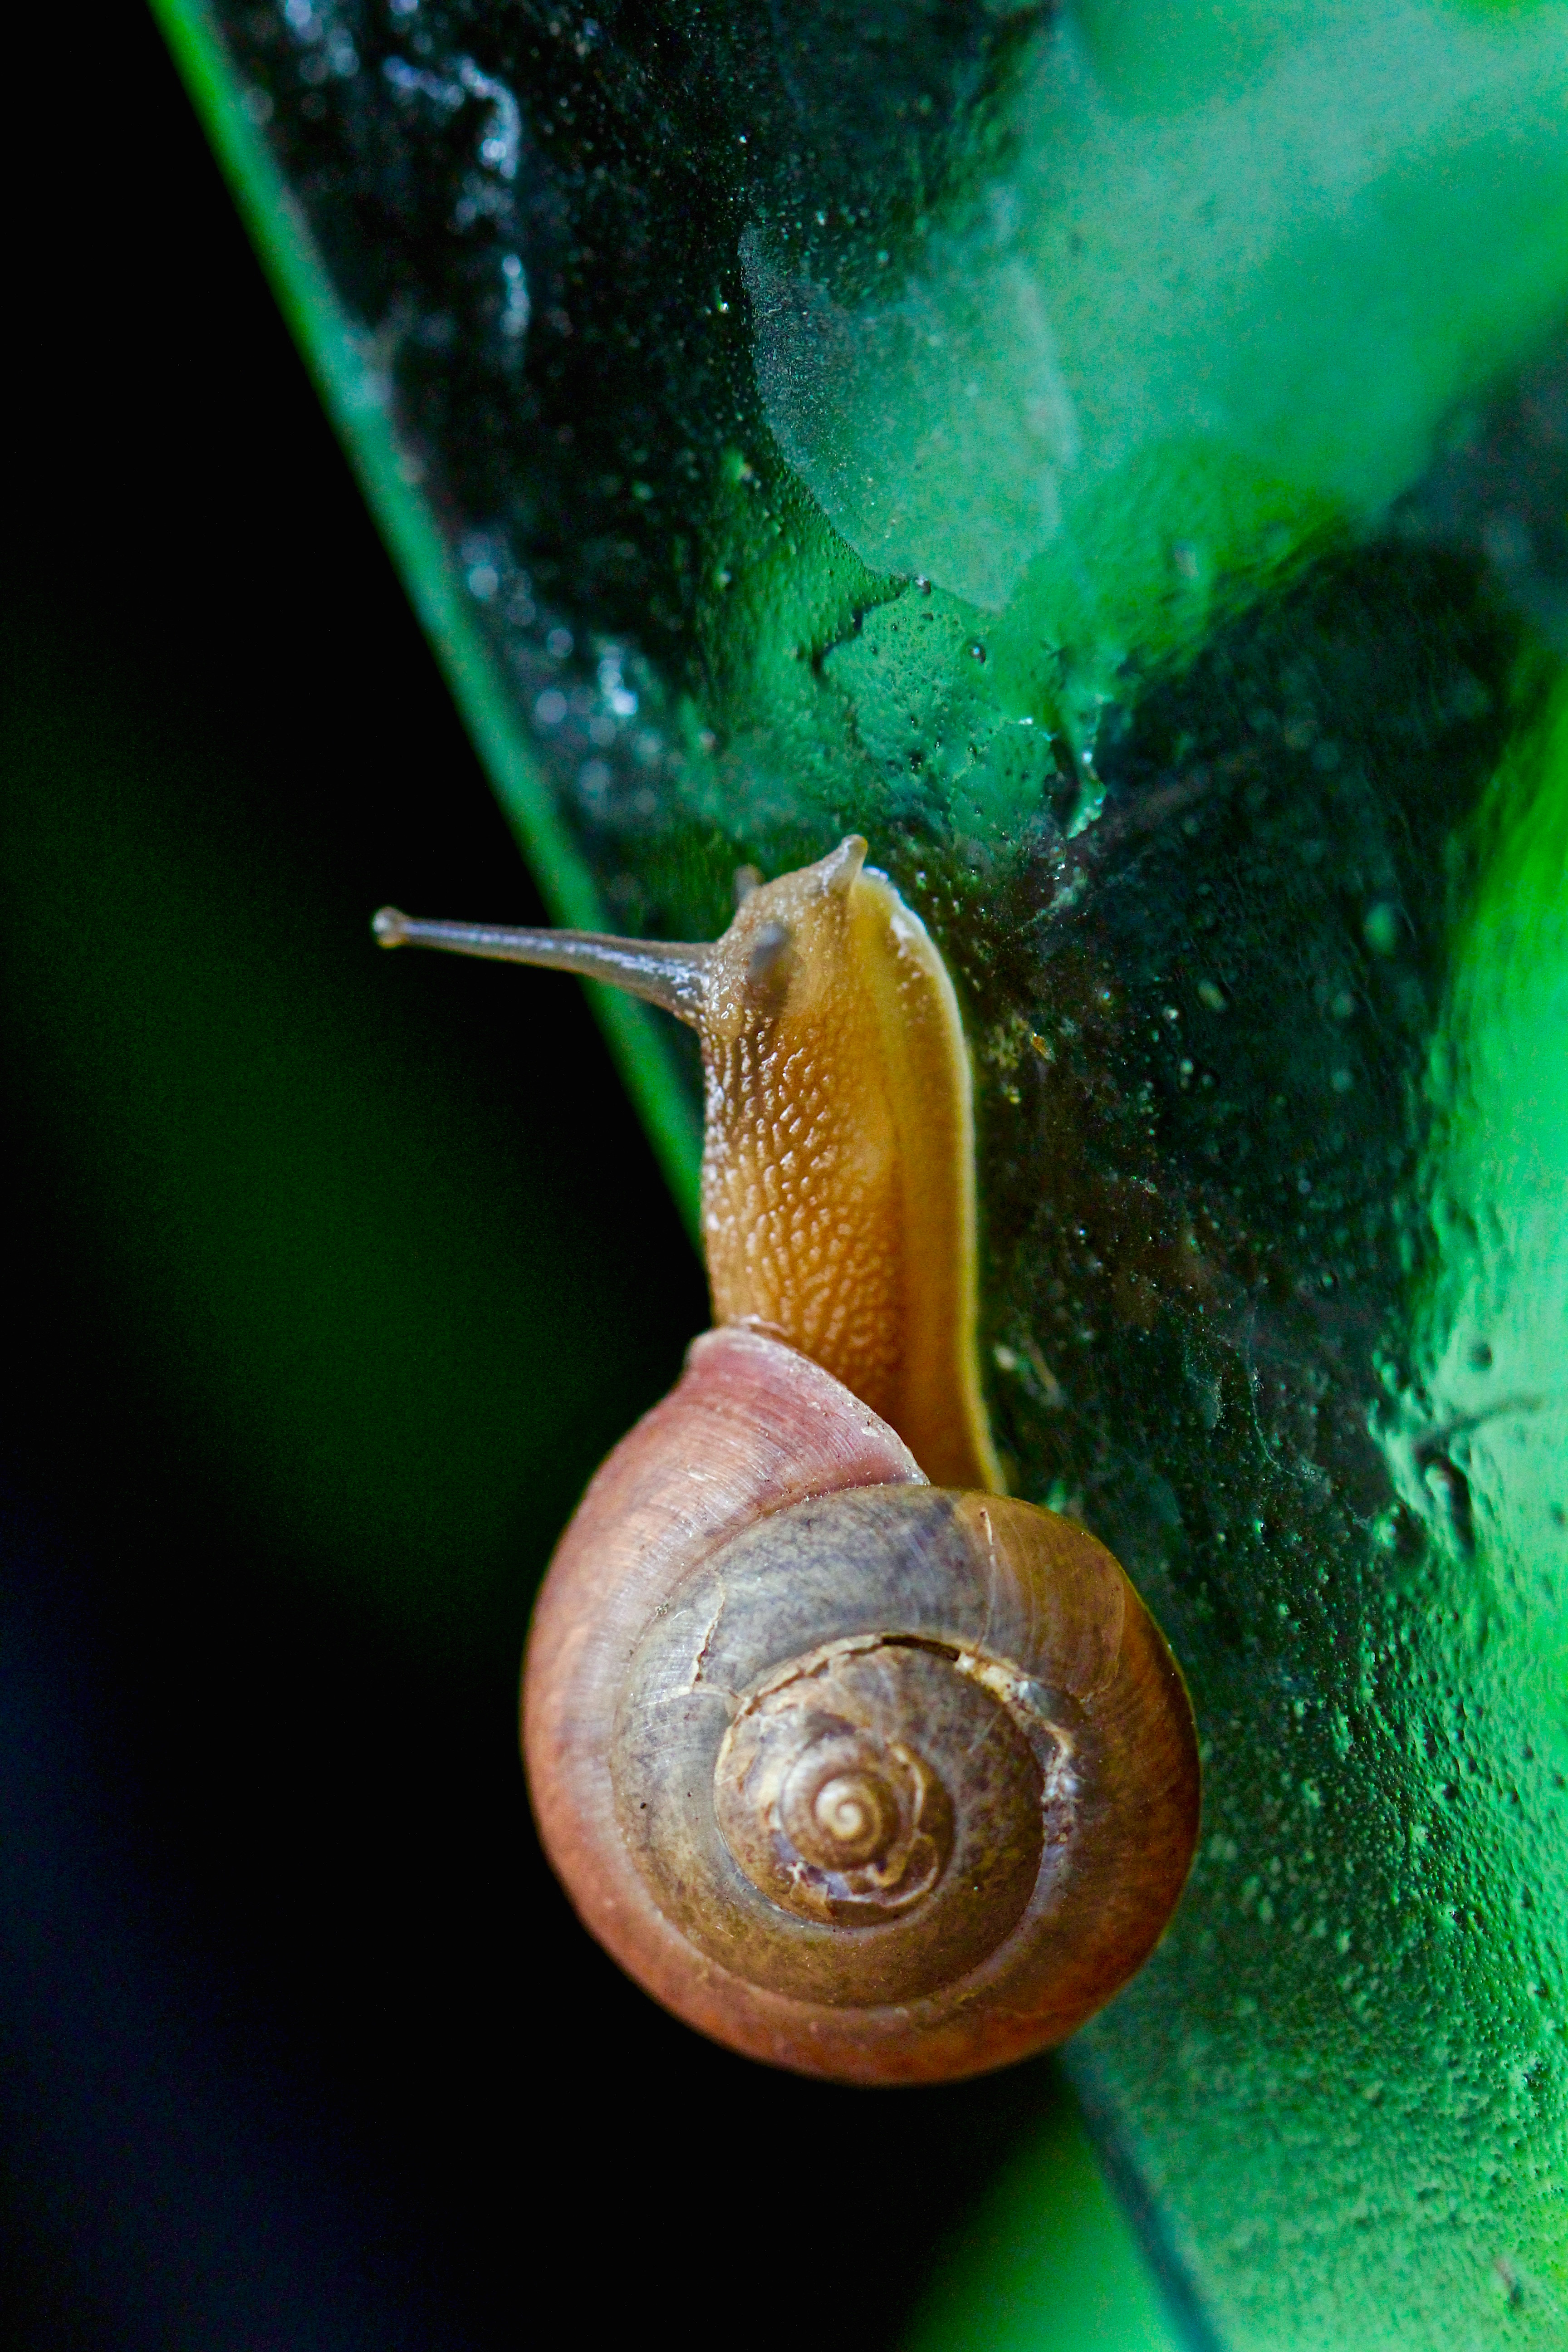 Images of Common Garden Pests, Bugs and Natural Remedy Solutions